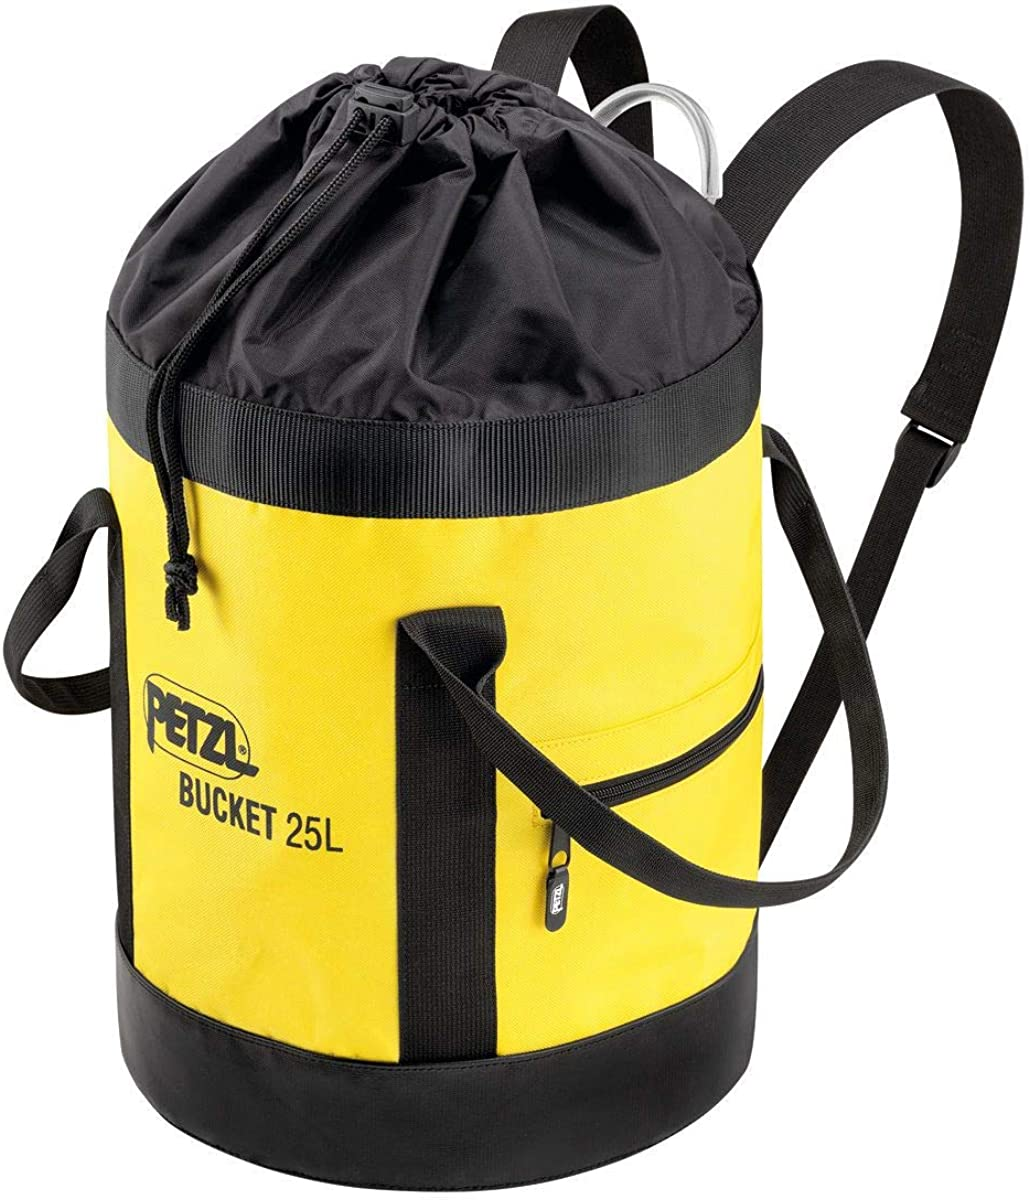 PETZL - Bucket, Fabric Pack, Remains Upright, 25 Liters : Clothing